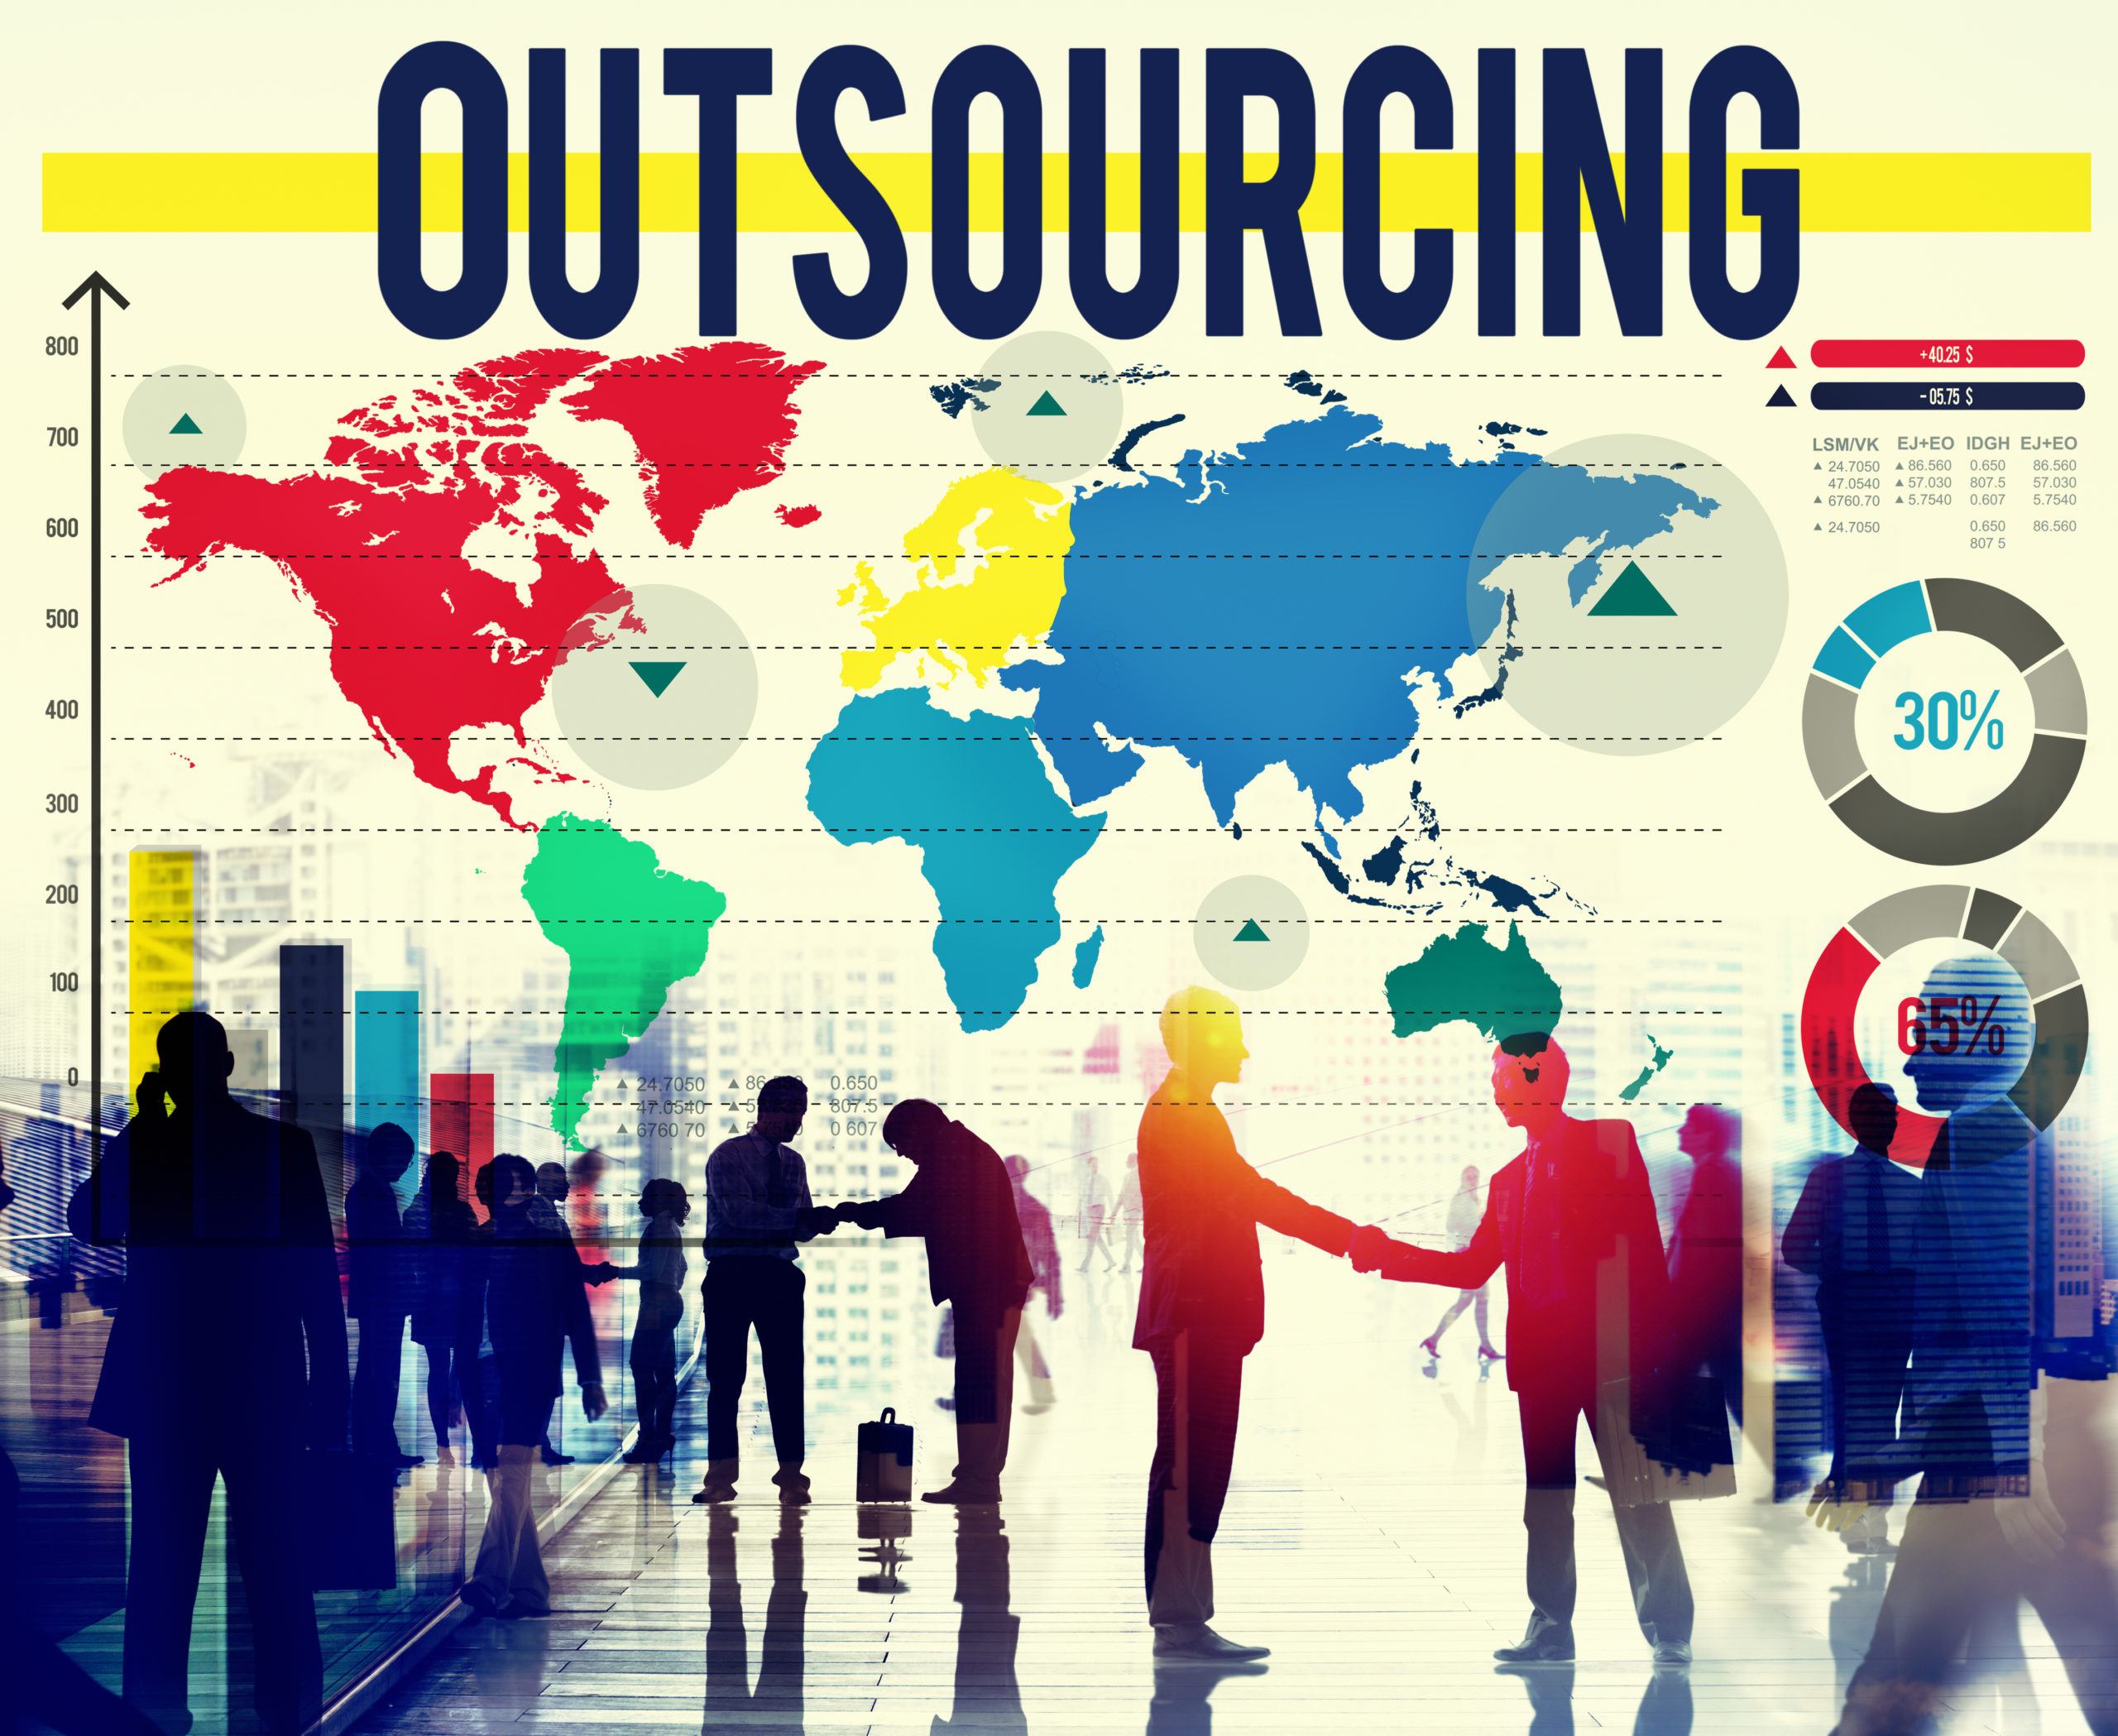 How to choose the right IT outsourcing company?